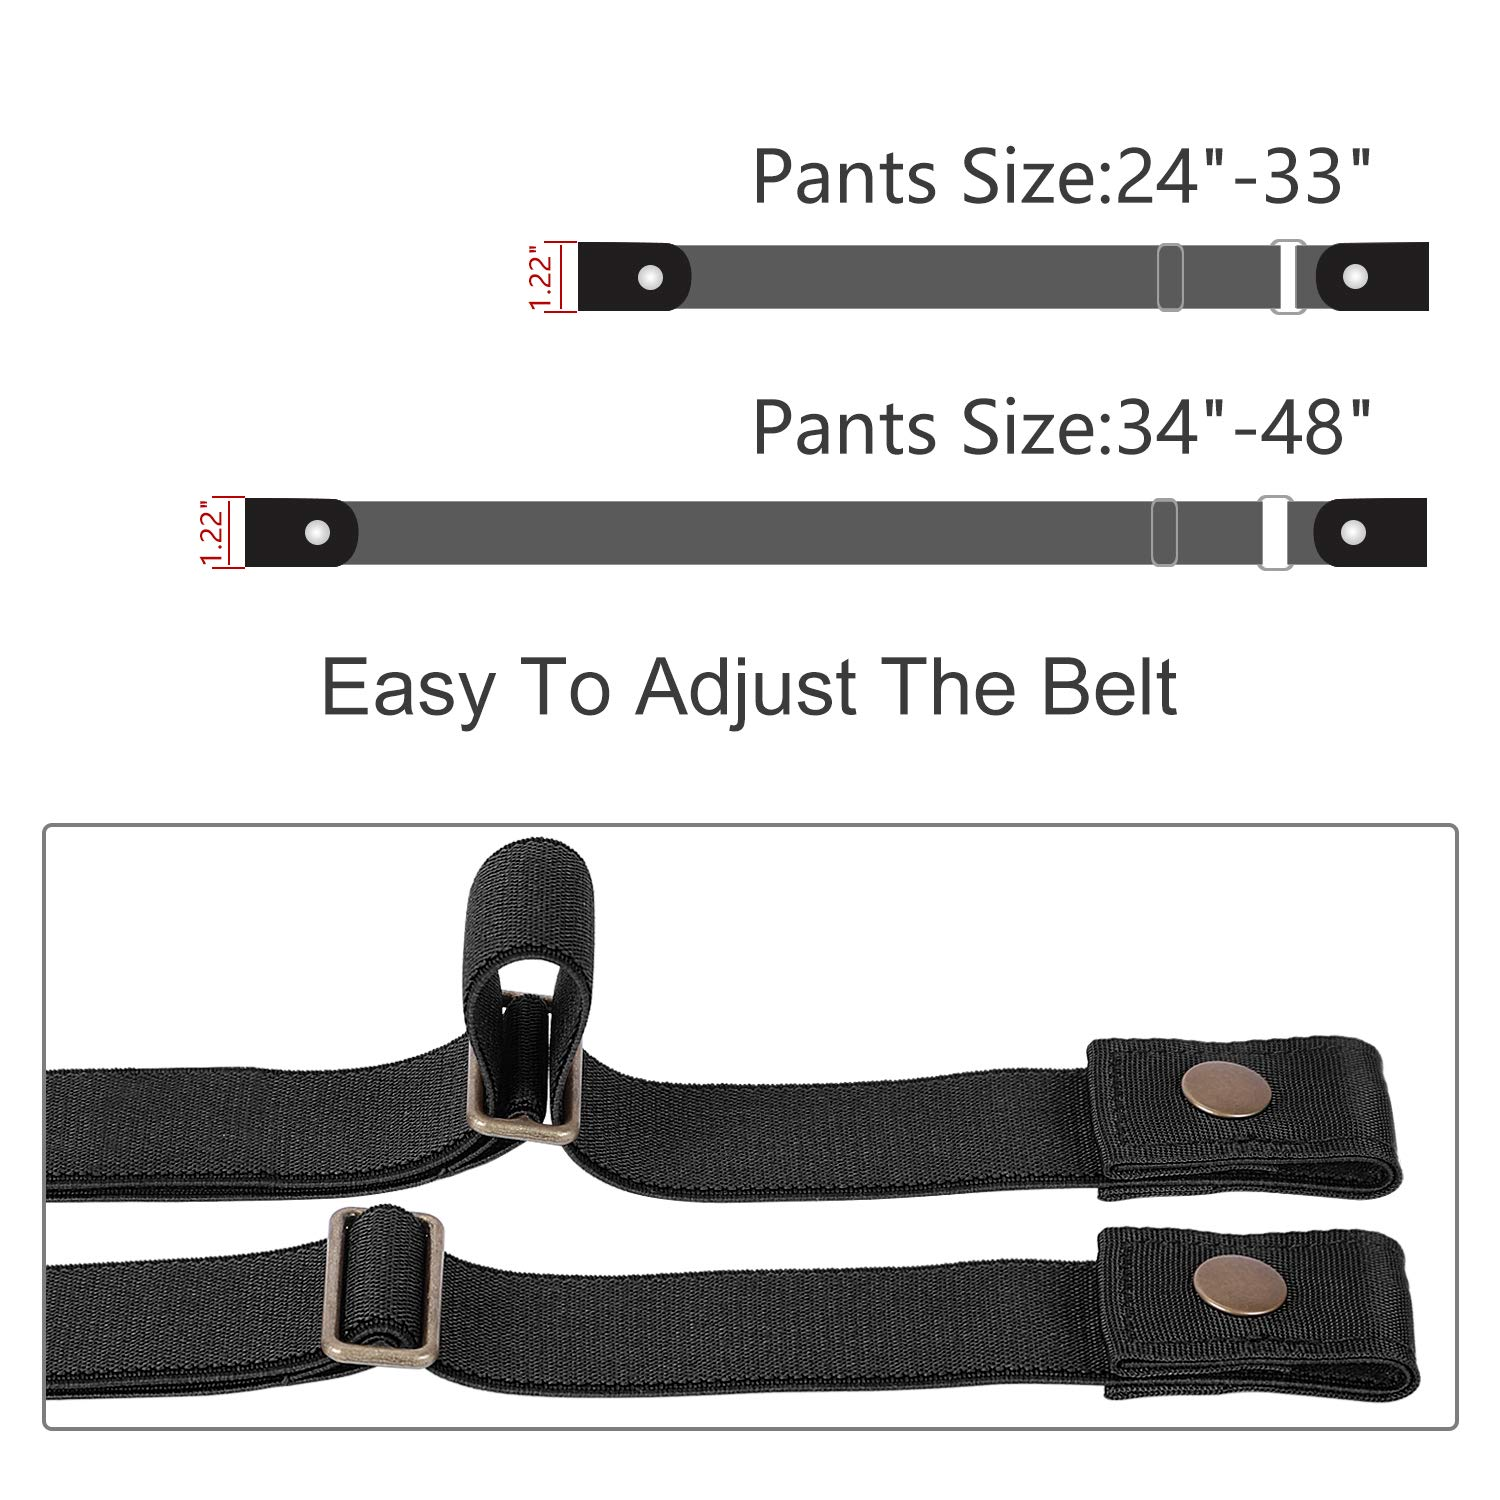 WERFORU Buckle-Free Women No Buckle Invisible Fabric Stretch Belt For Jeans, Black, Large(Pants Size 34-48 Inches)